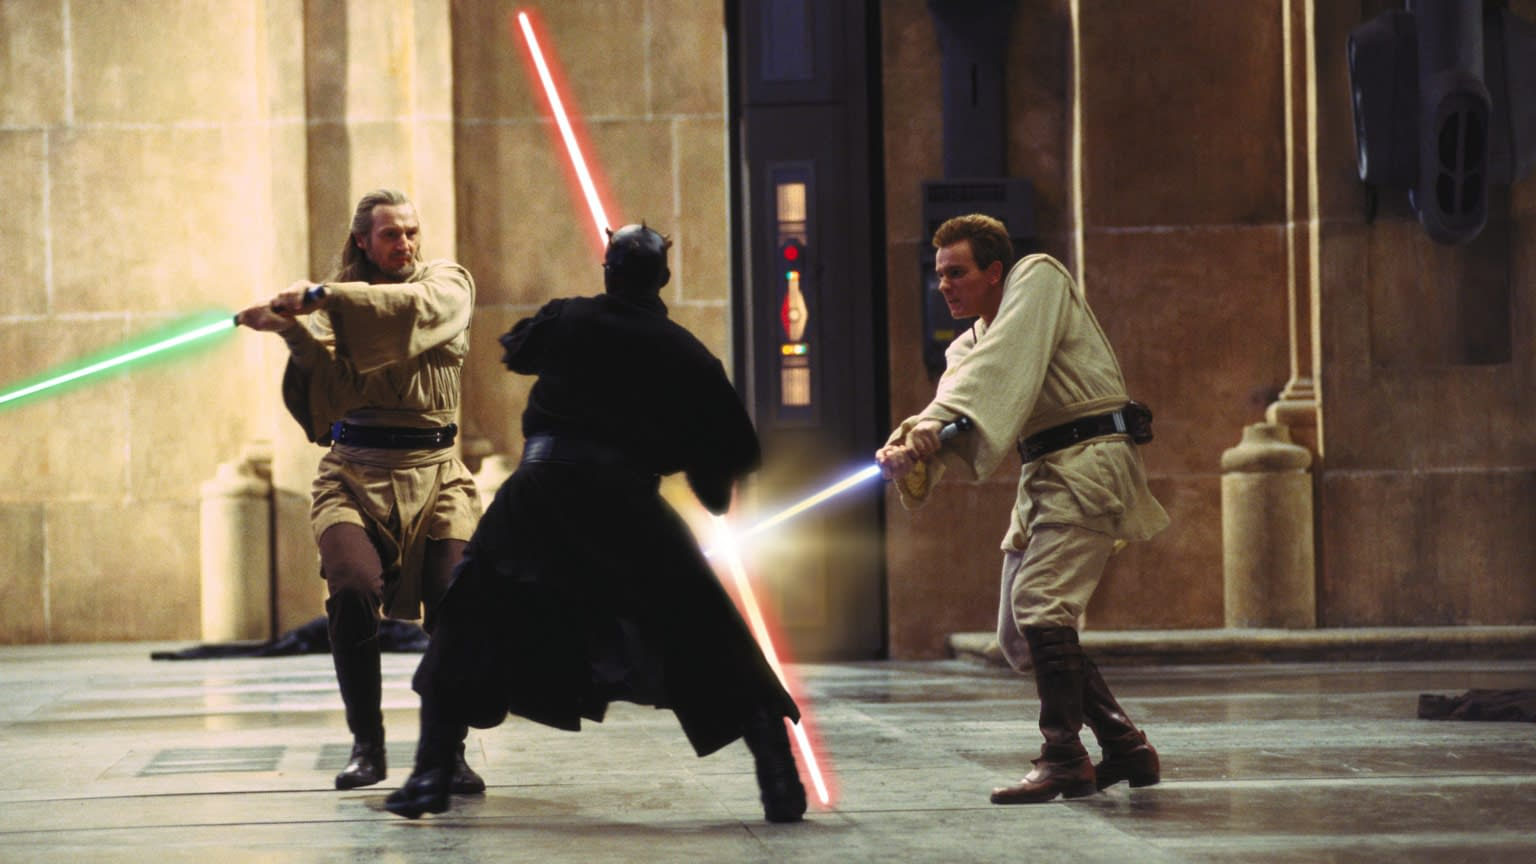 An Oral History of 'Star Wars: Episode I The Phantom Menace' From the Creators